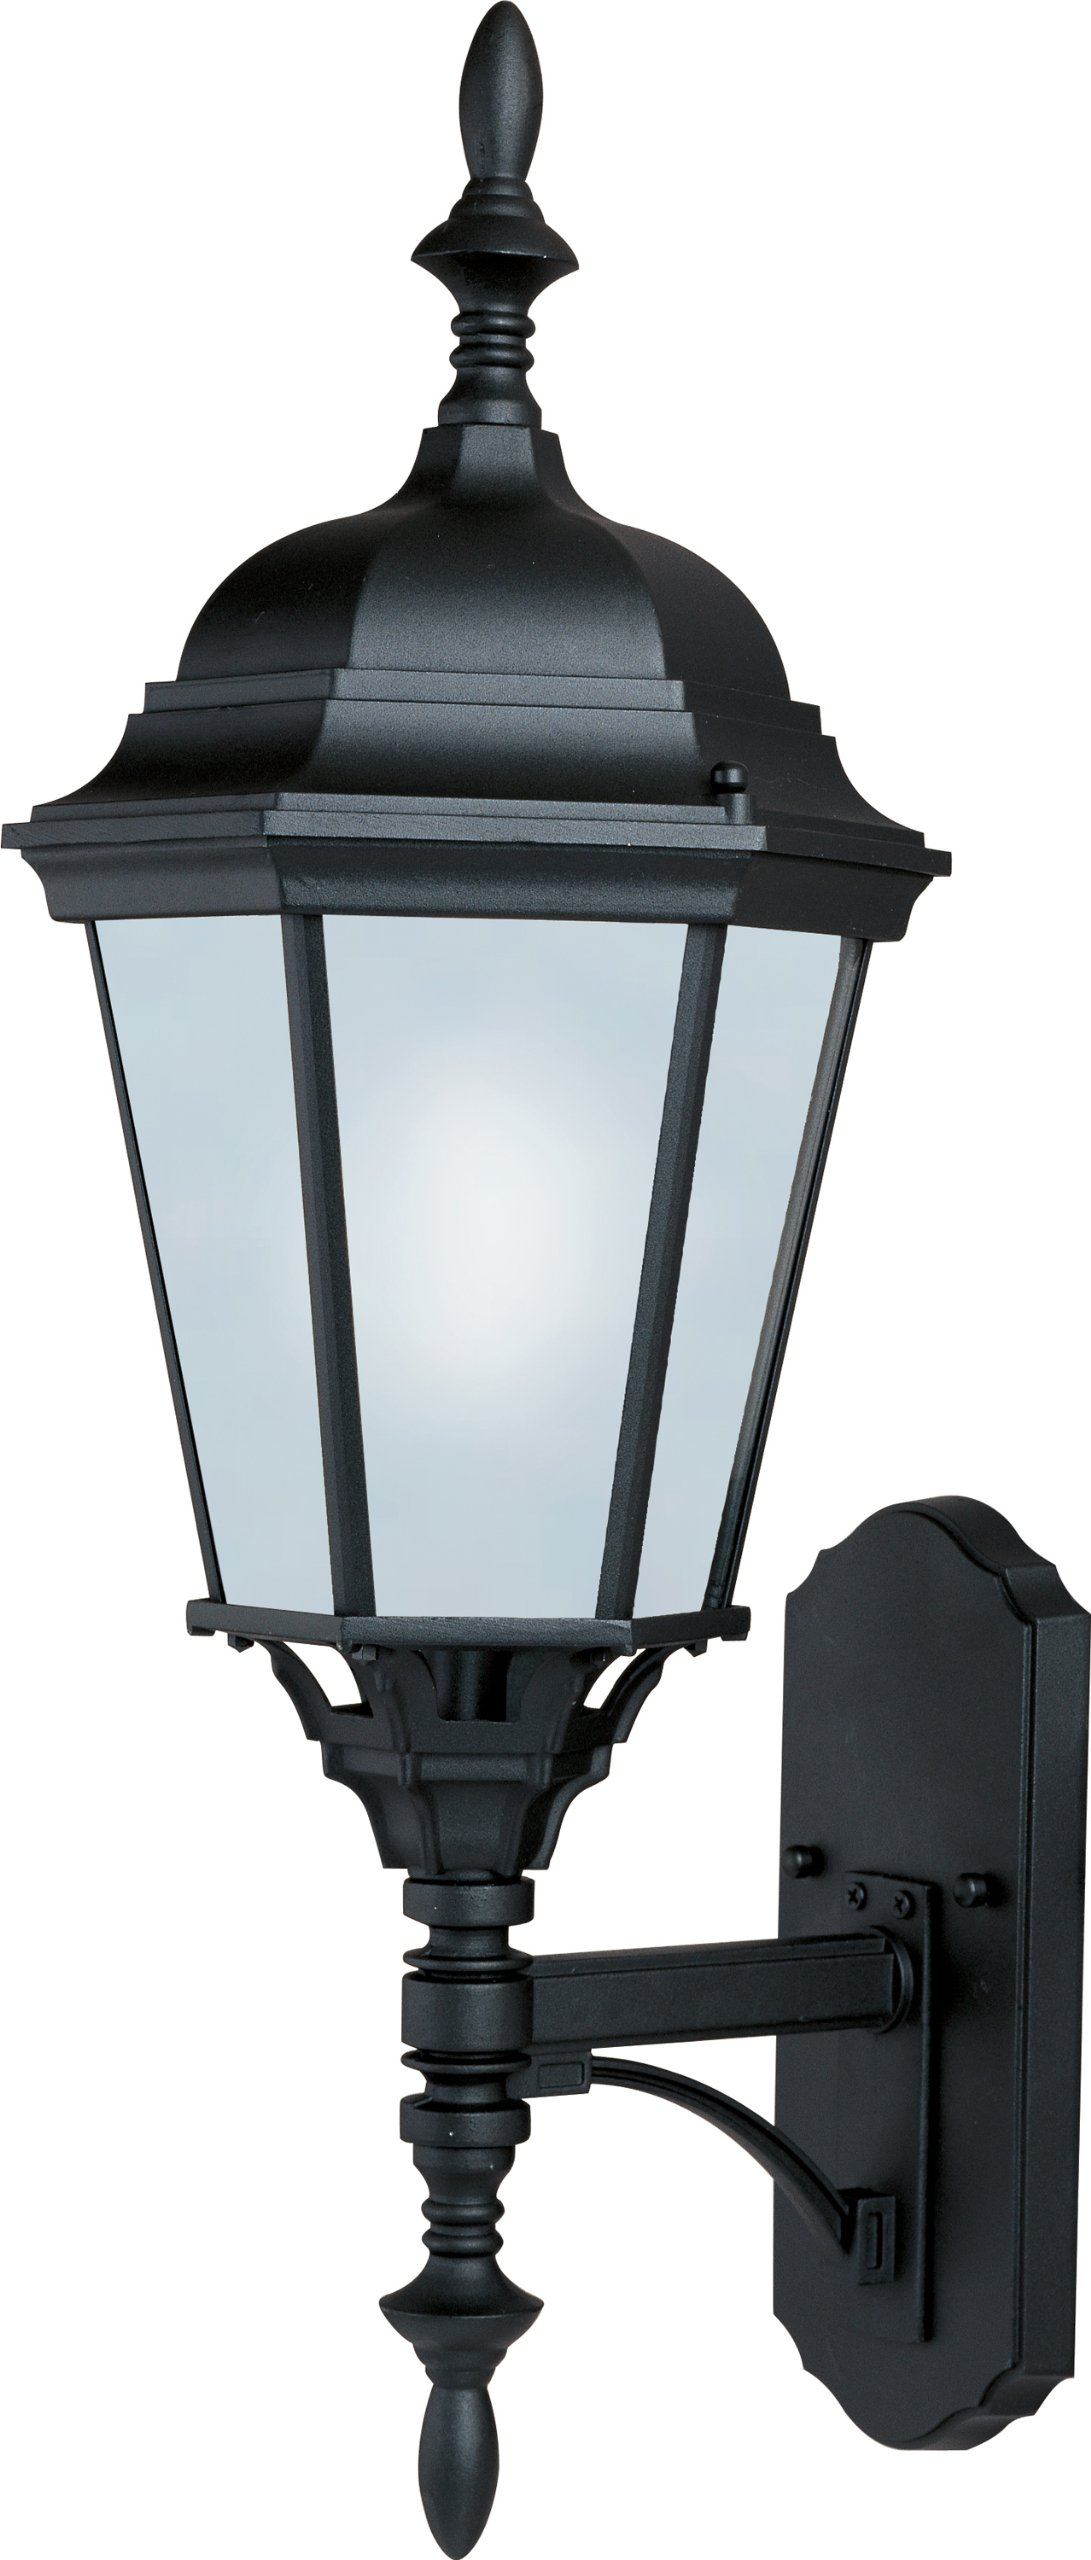 Maxim 85103BK Westlake EE 1-Light Outdoor Wall Lantern, Black Finish, Frosted Glass, GU24 Fluorescent Fluorescent Bulb , 60W Max., Dry Safety Rating, Standard Dimmable, Glass Shade Material, 1344 Rated Lumens